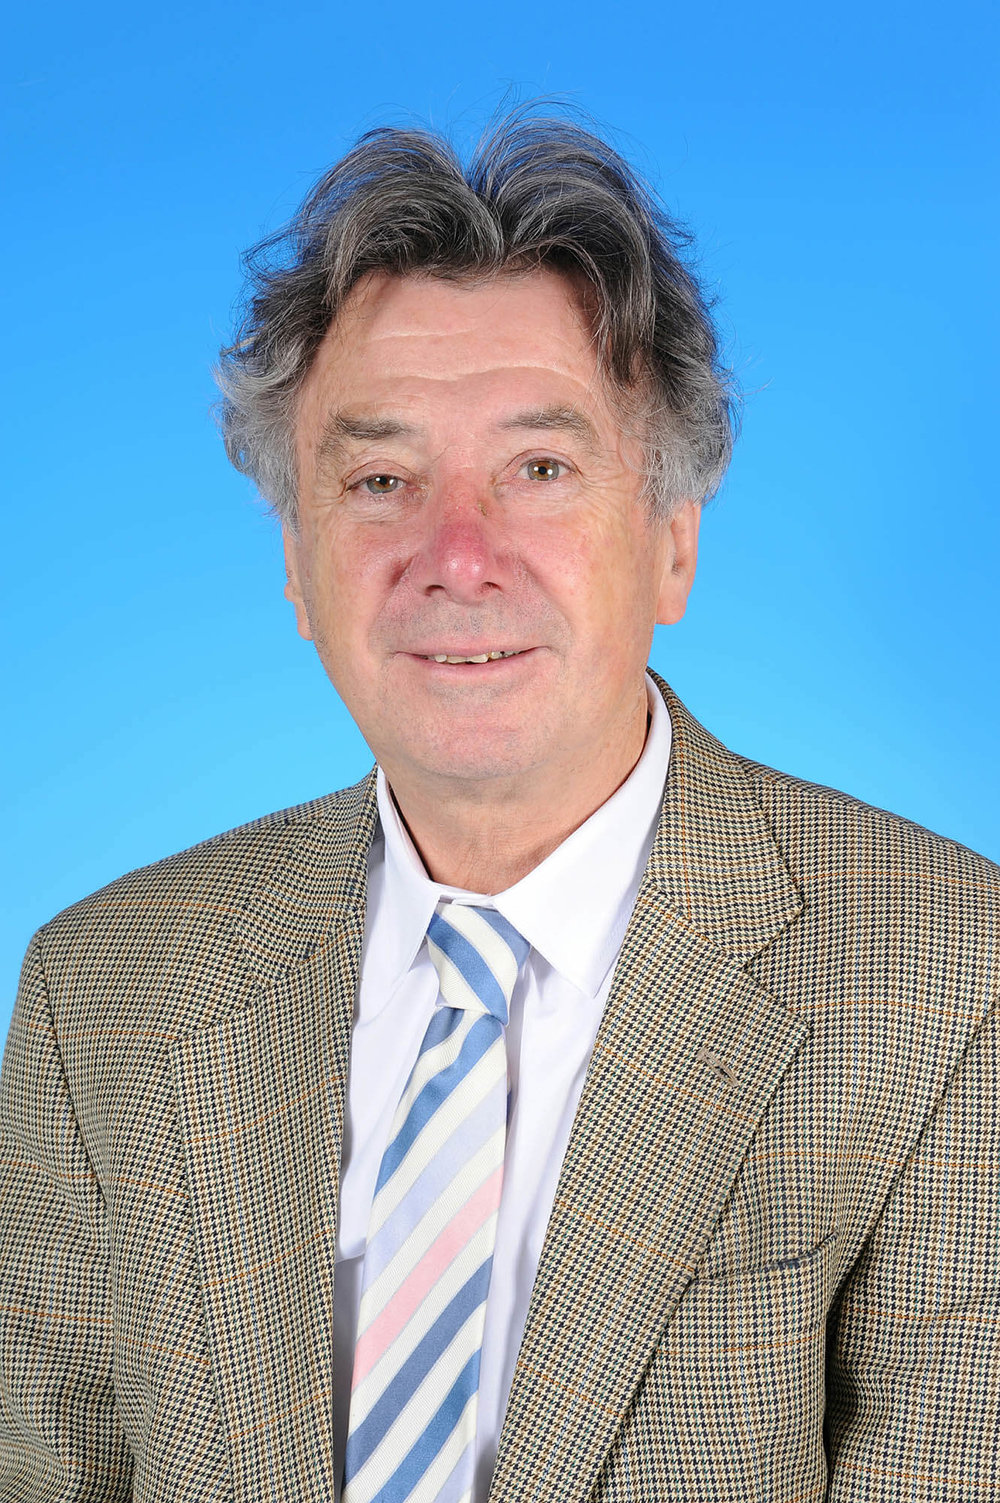 Councillor John Hesketh